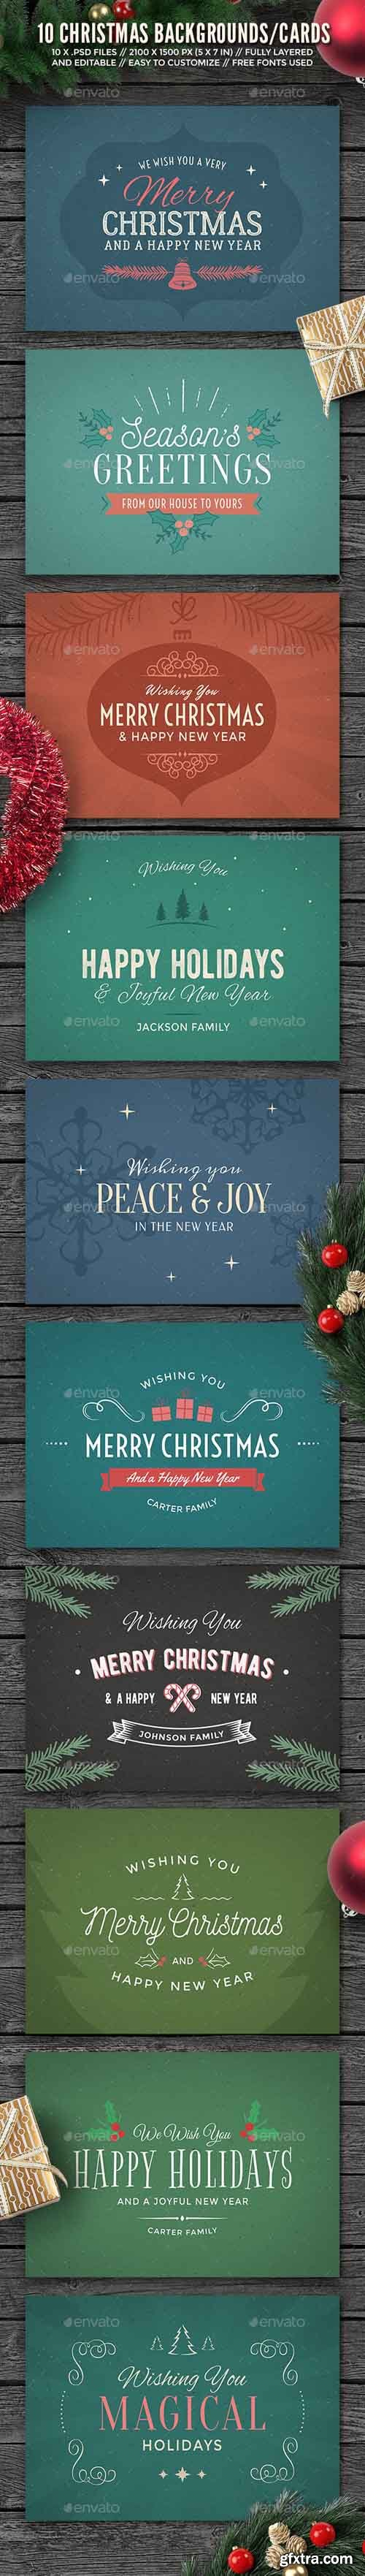 GR - 10 Christmas Backgrounds/Cards 13905872